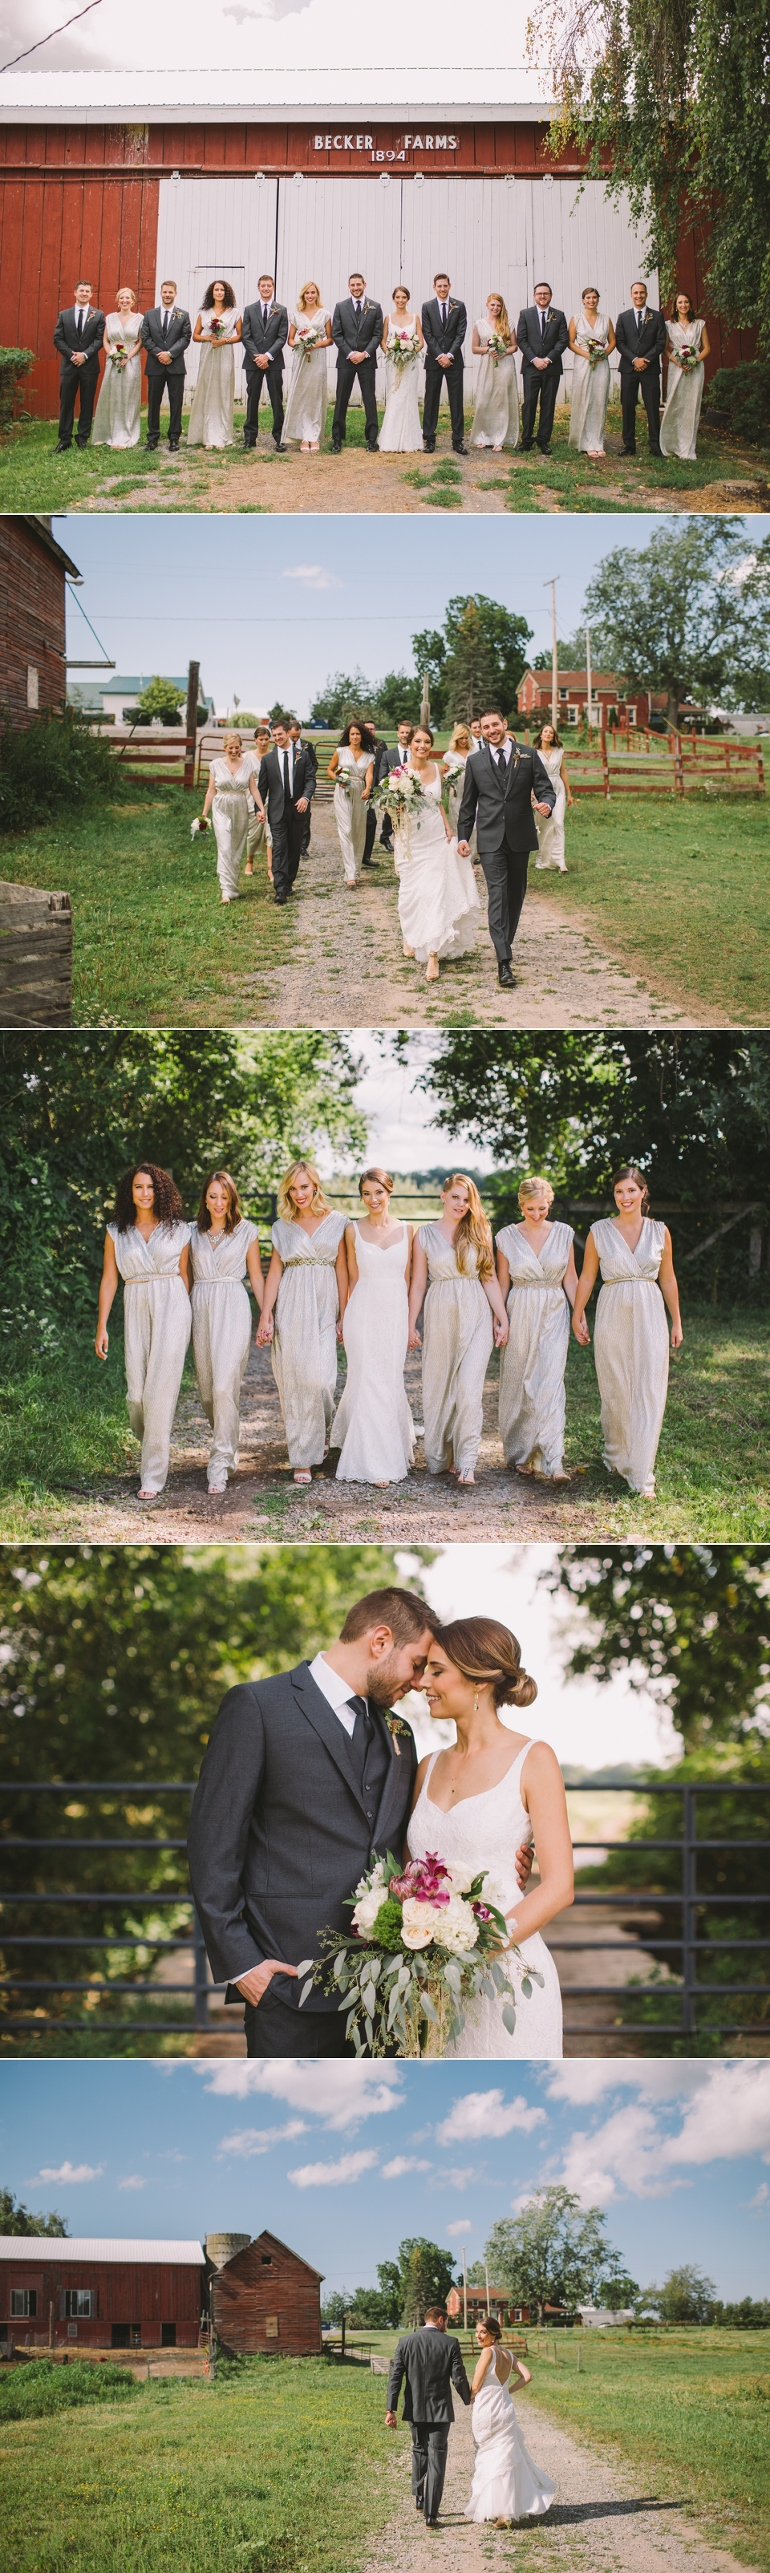 becker-farms-wedding-AJ-2015_0007